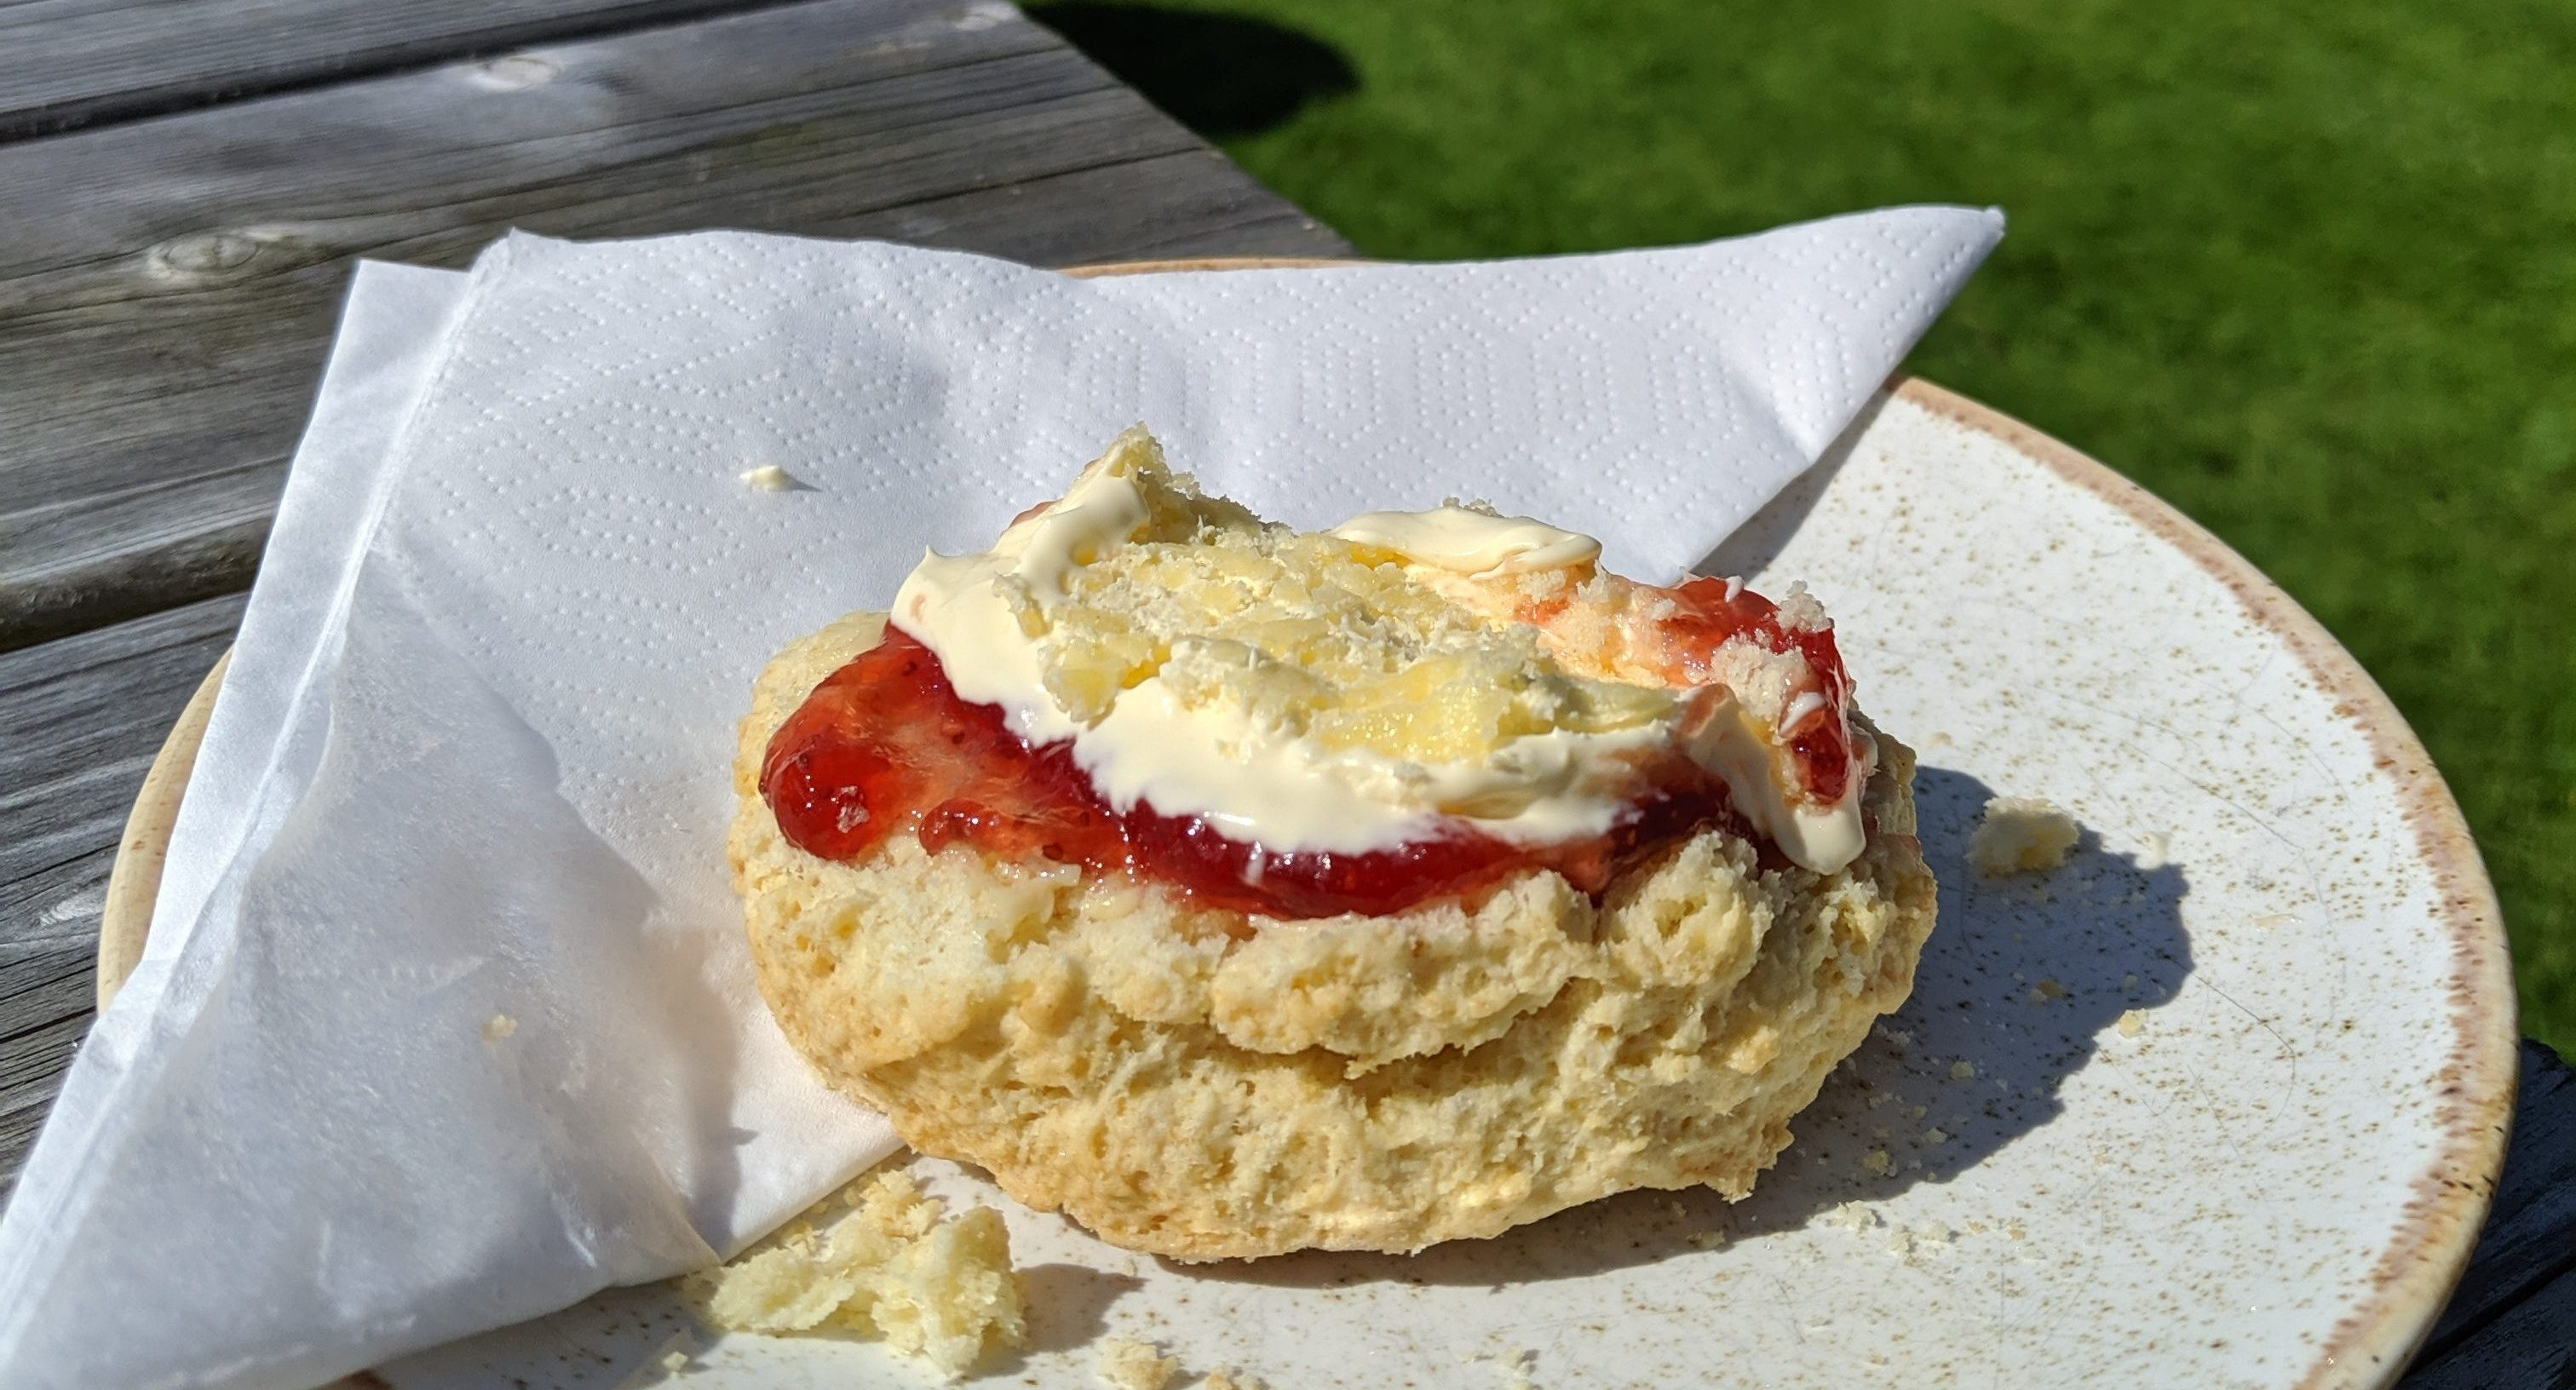 Jam and cream scone at Littletown Farm